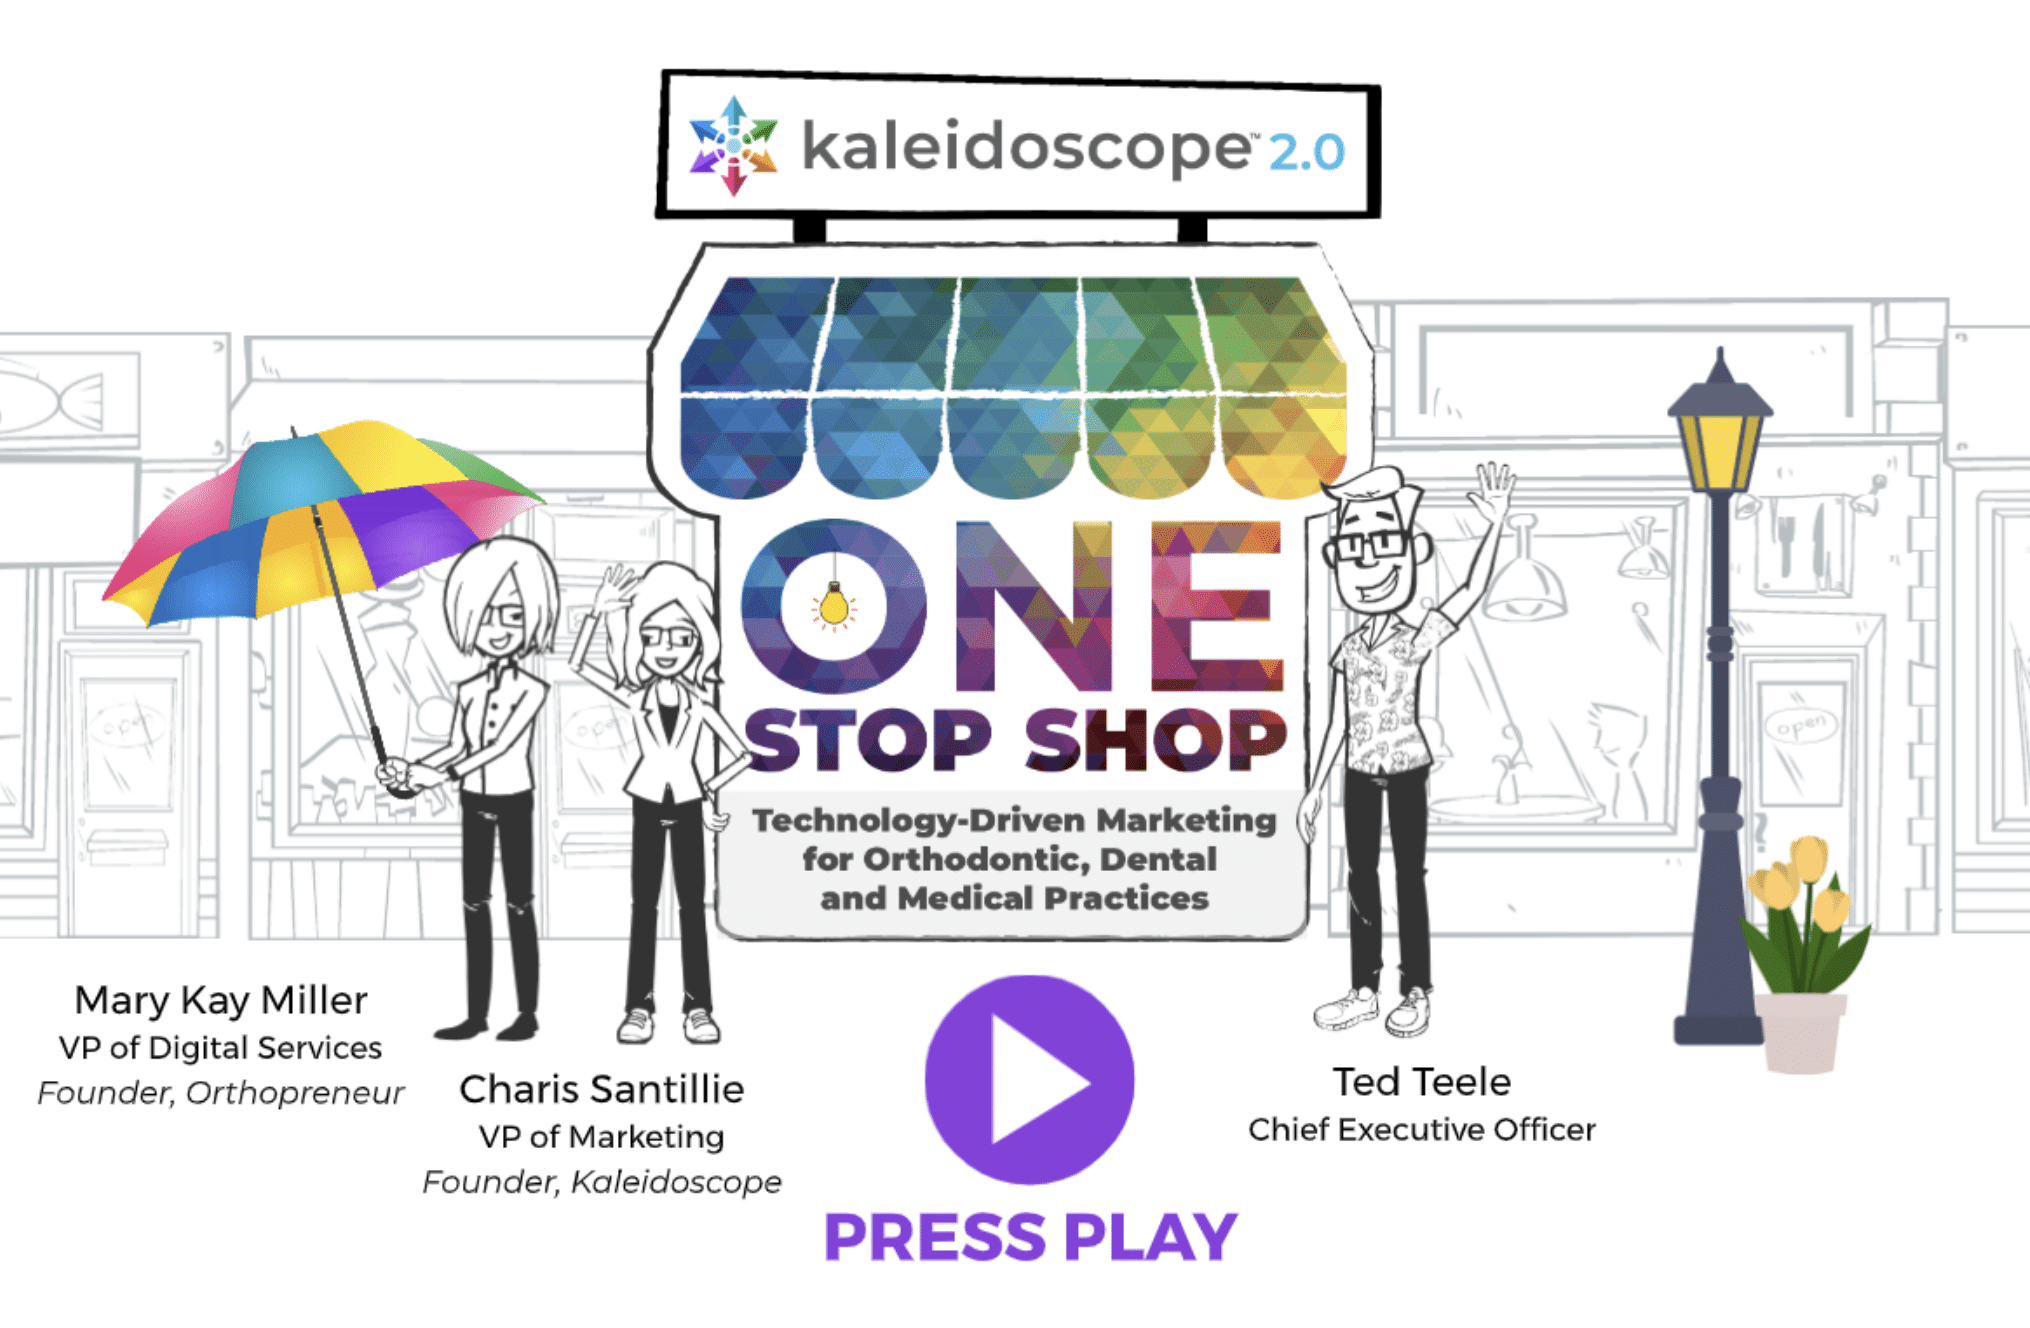 Video Kaleidoscope 2.0 One Stop Shop for Orthodontic, Dental, and Medical Practices